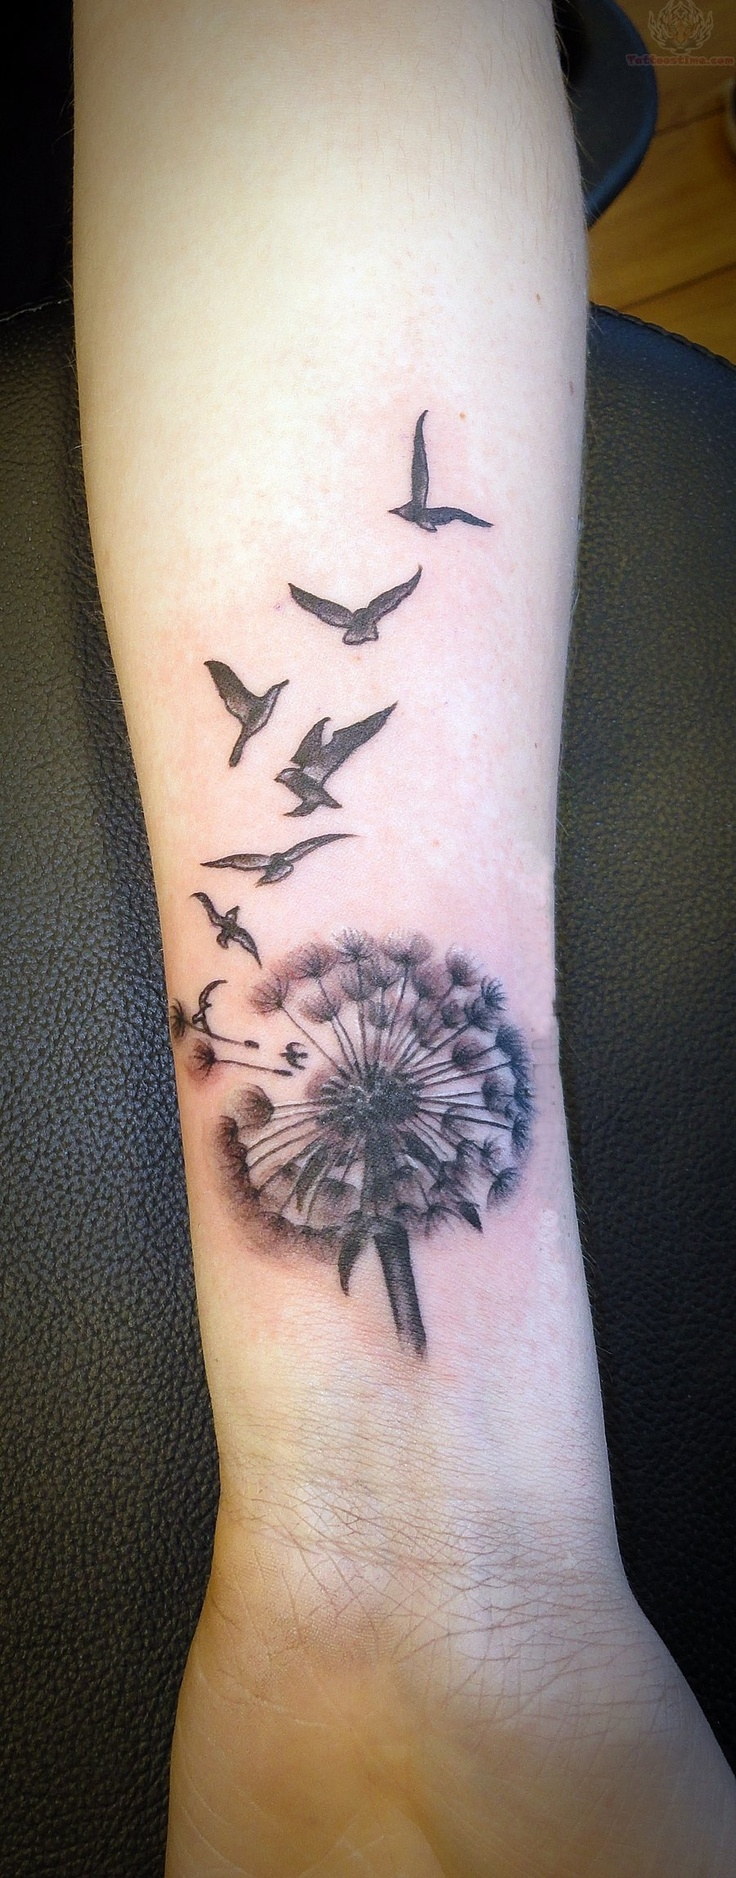 dandelion tattoos designs ideas and meaning tattoos for you. Black Bedroom Furniture Sets. Home Design Ideas